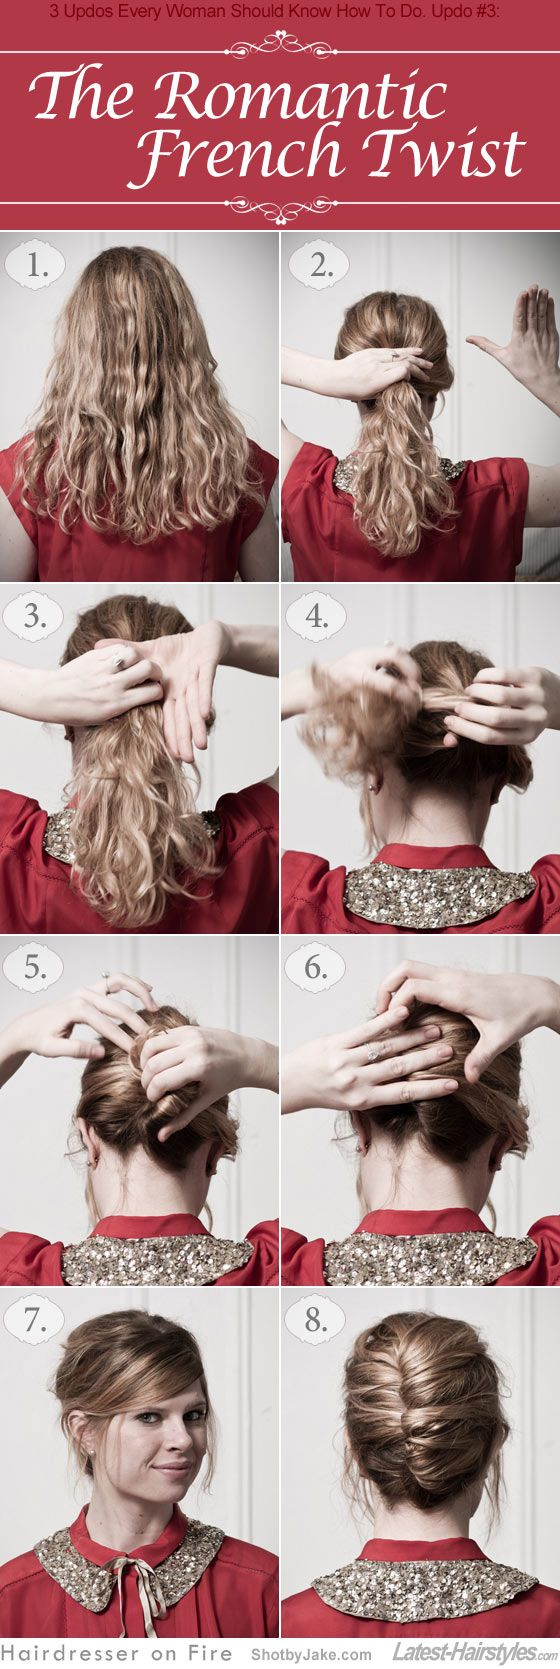 Easy up-dos for the everyday girl!Romantic French, Hairstyles, Hair Tutorials, French Twists Hair, Long Hair, Beautiful, Hair Style, Savory Recipe, Updo